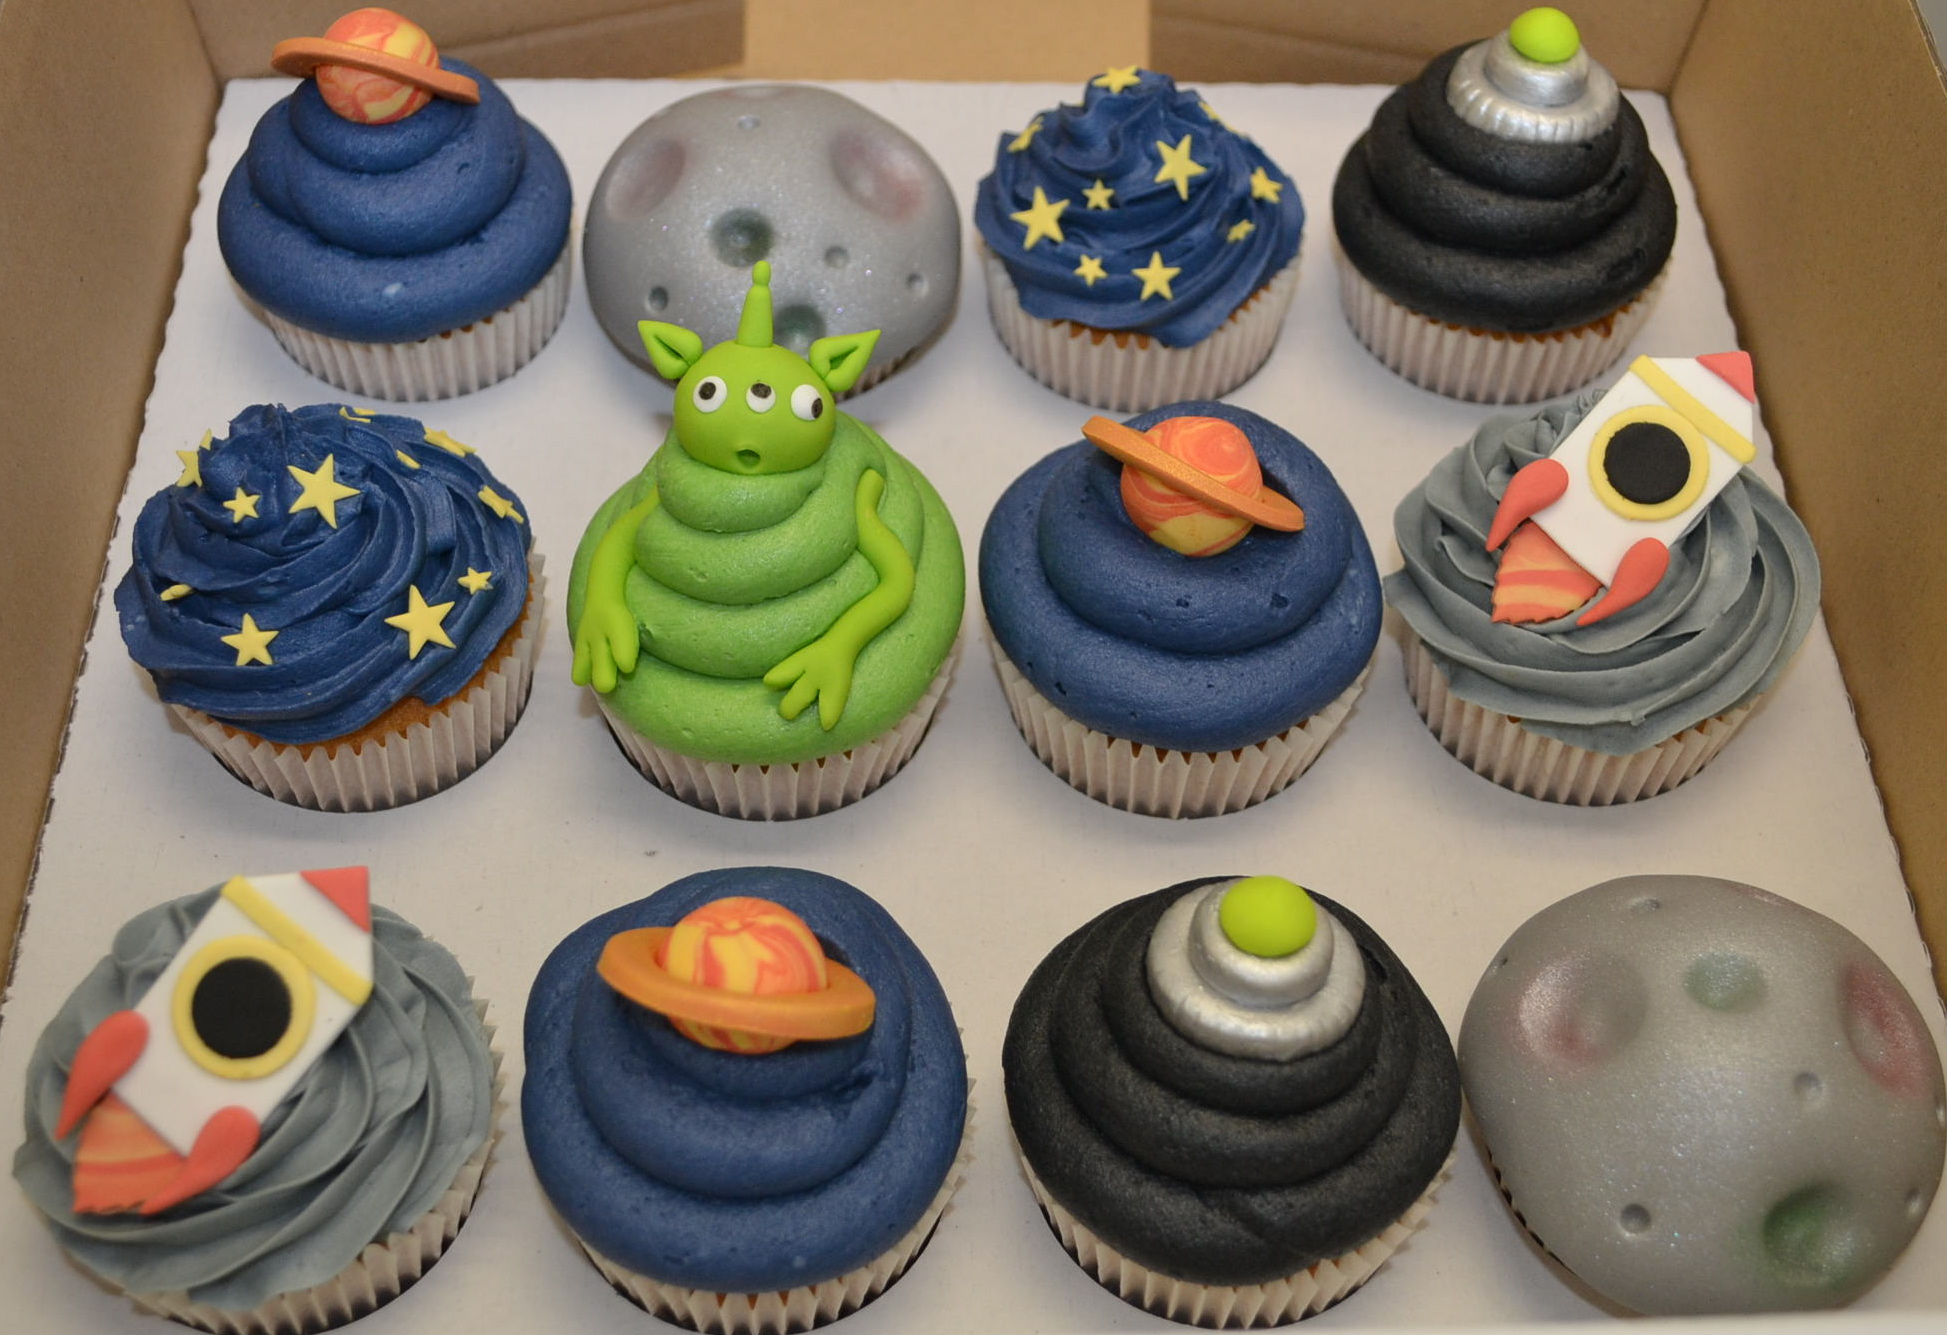 35 Space Themed Cupcakes For Astronomers - Cupcakes Gallery